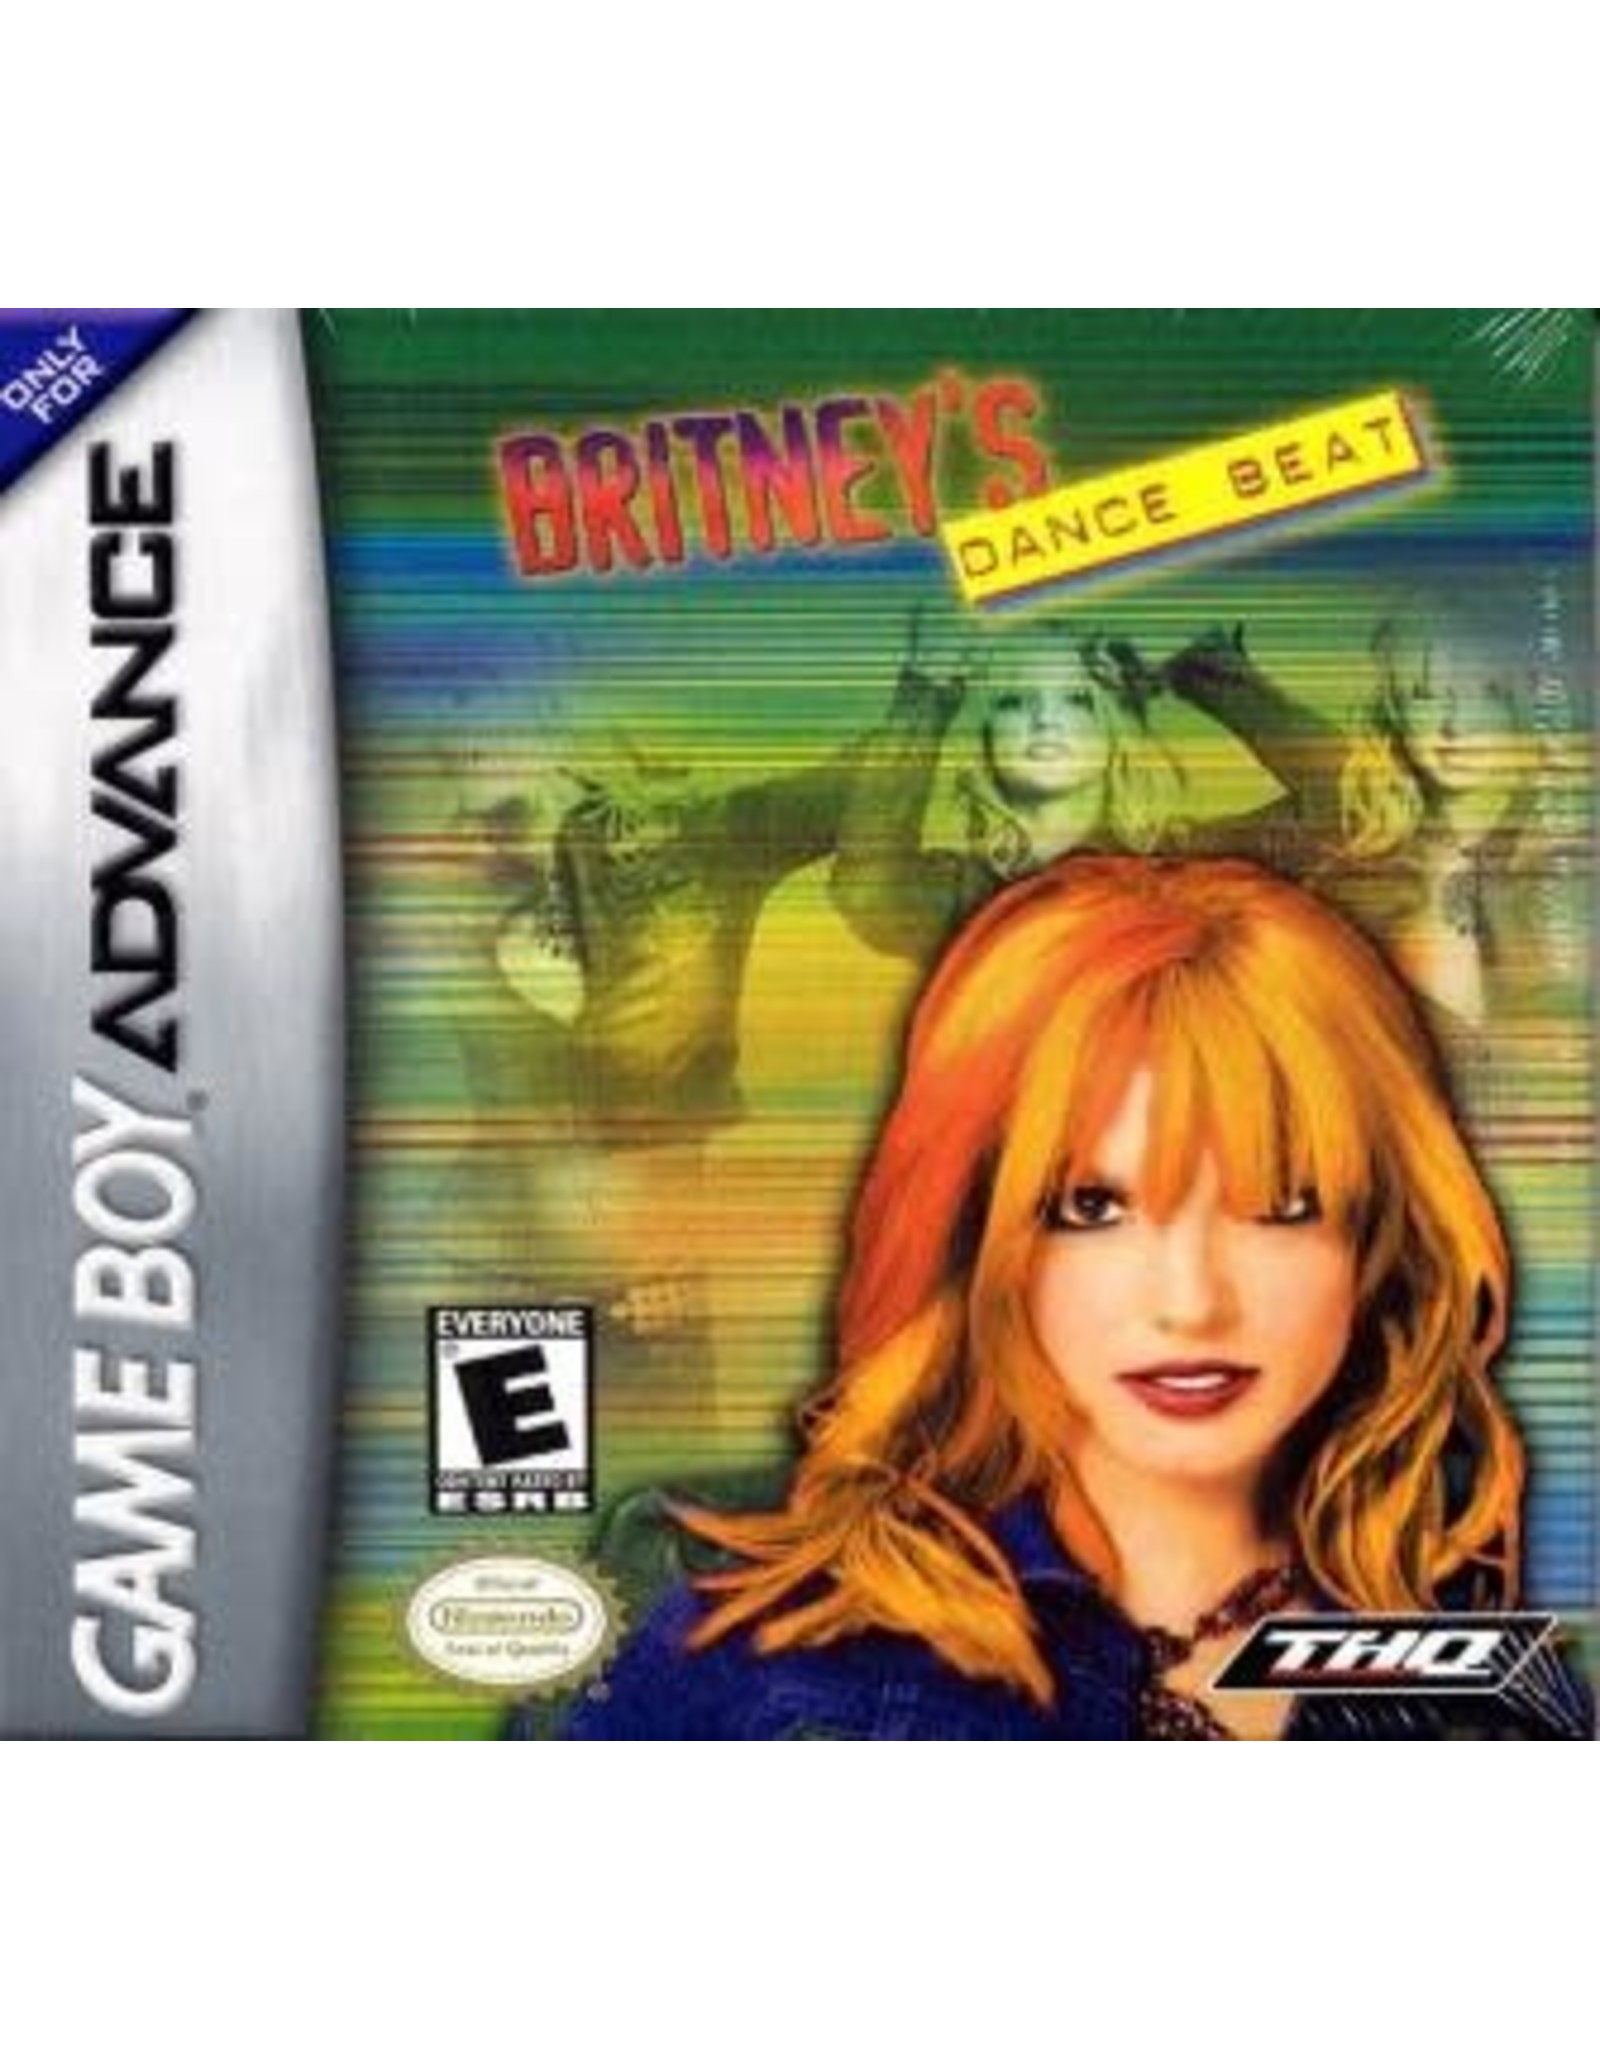 GameBoy Advance Britney's Dance Beat (Cart Only)